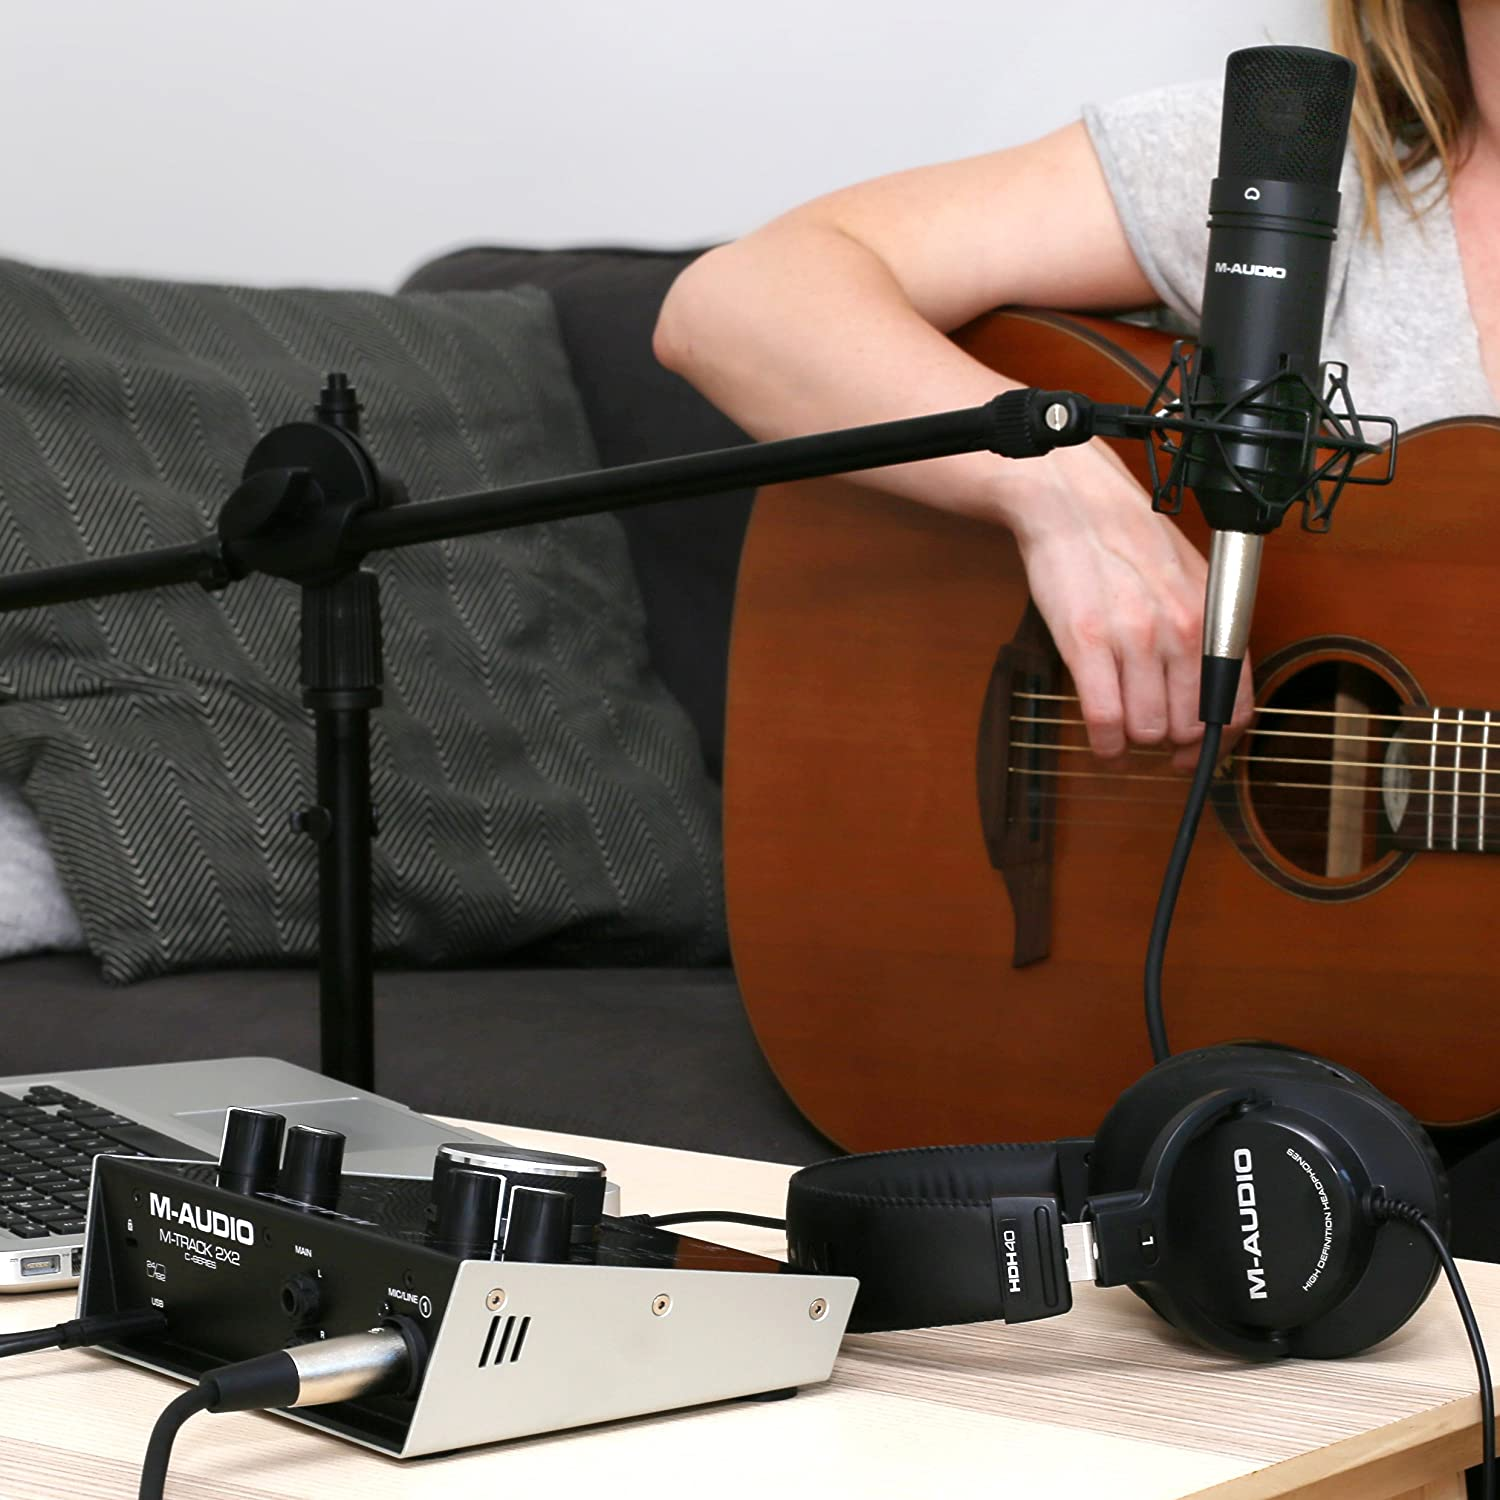 condenser Microphone XLR Cable Headphones and the C-Series Software Suite M-Audio M-Track 2X2 Vocal Studio Pro Complete Vocal Production Package Including a Pro-Grade Interface